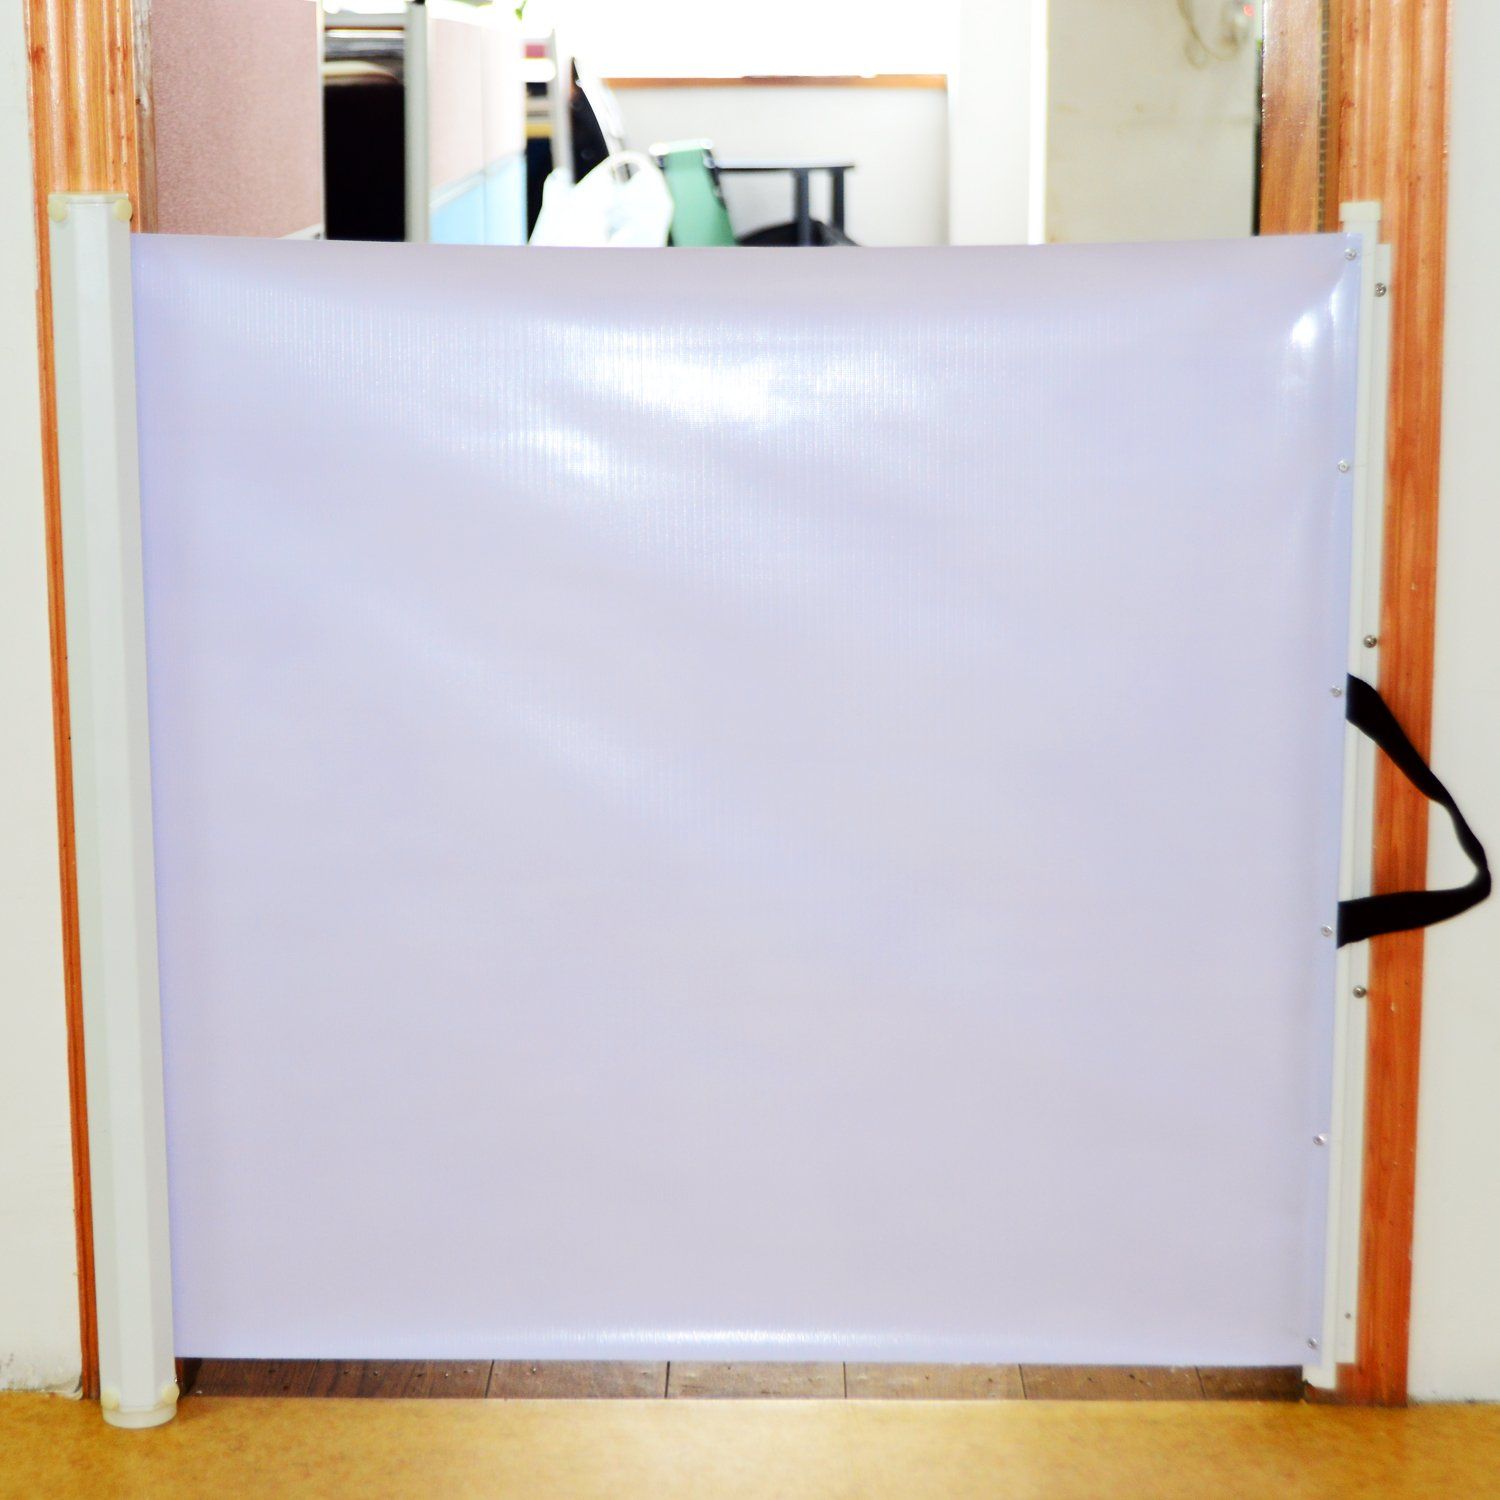 PawHut Retractable Safety Gate Dog Pet Baby Kids Barrier Folding Protector  Home Doorway Room Divider Stair Guard White 115Lx82.5Hcm: Amazon.co.uk: Pet  ...